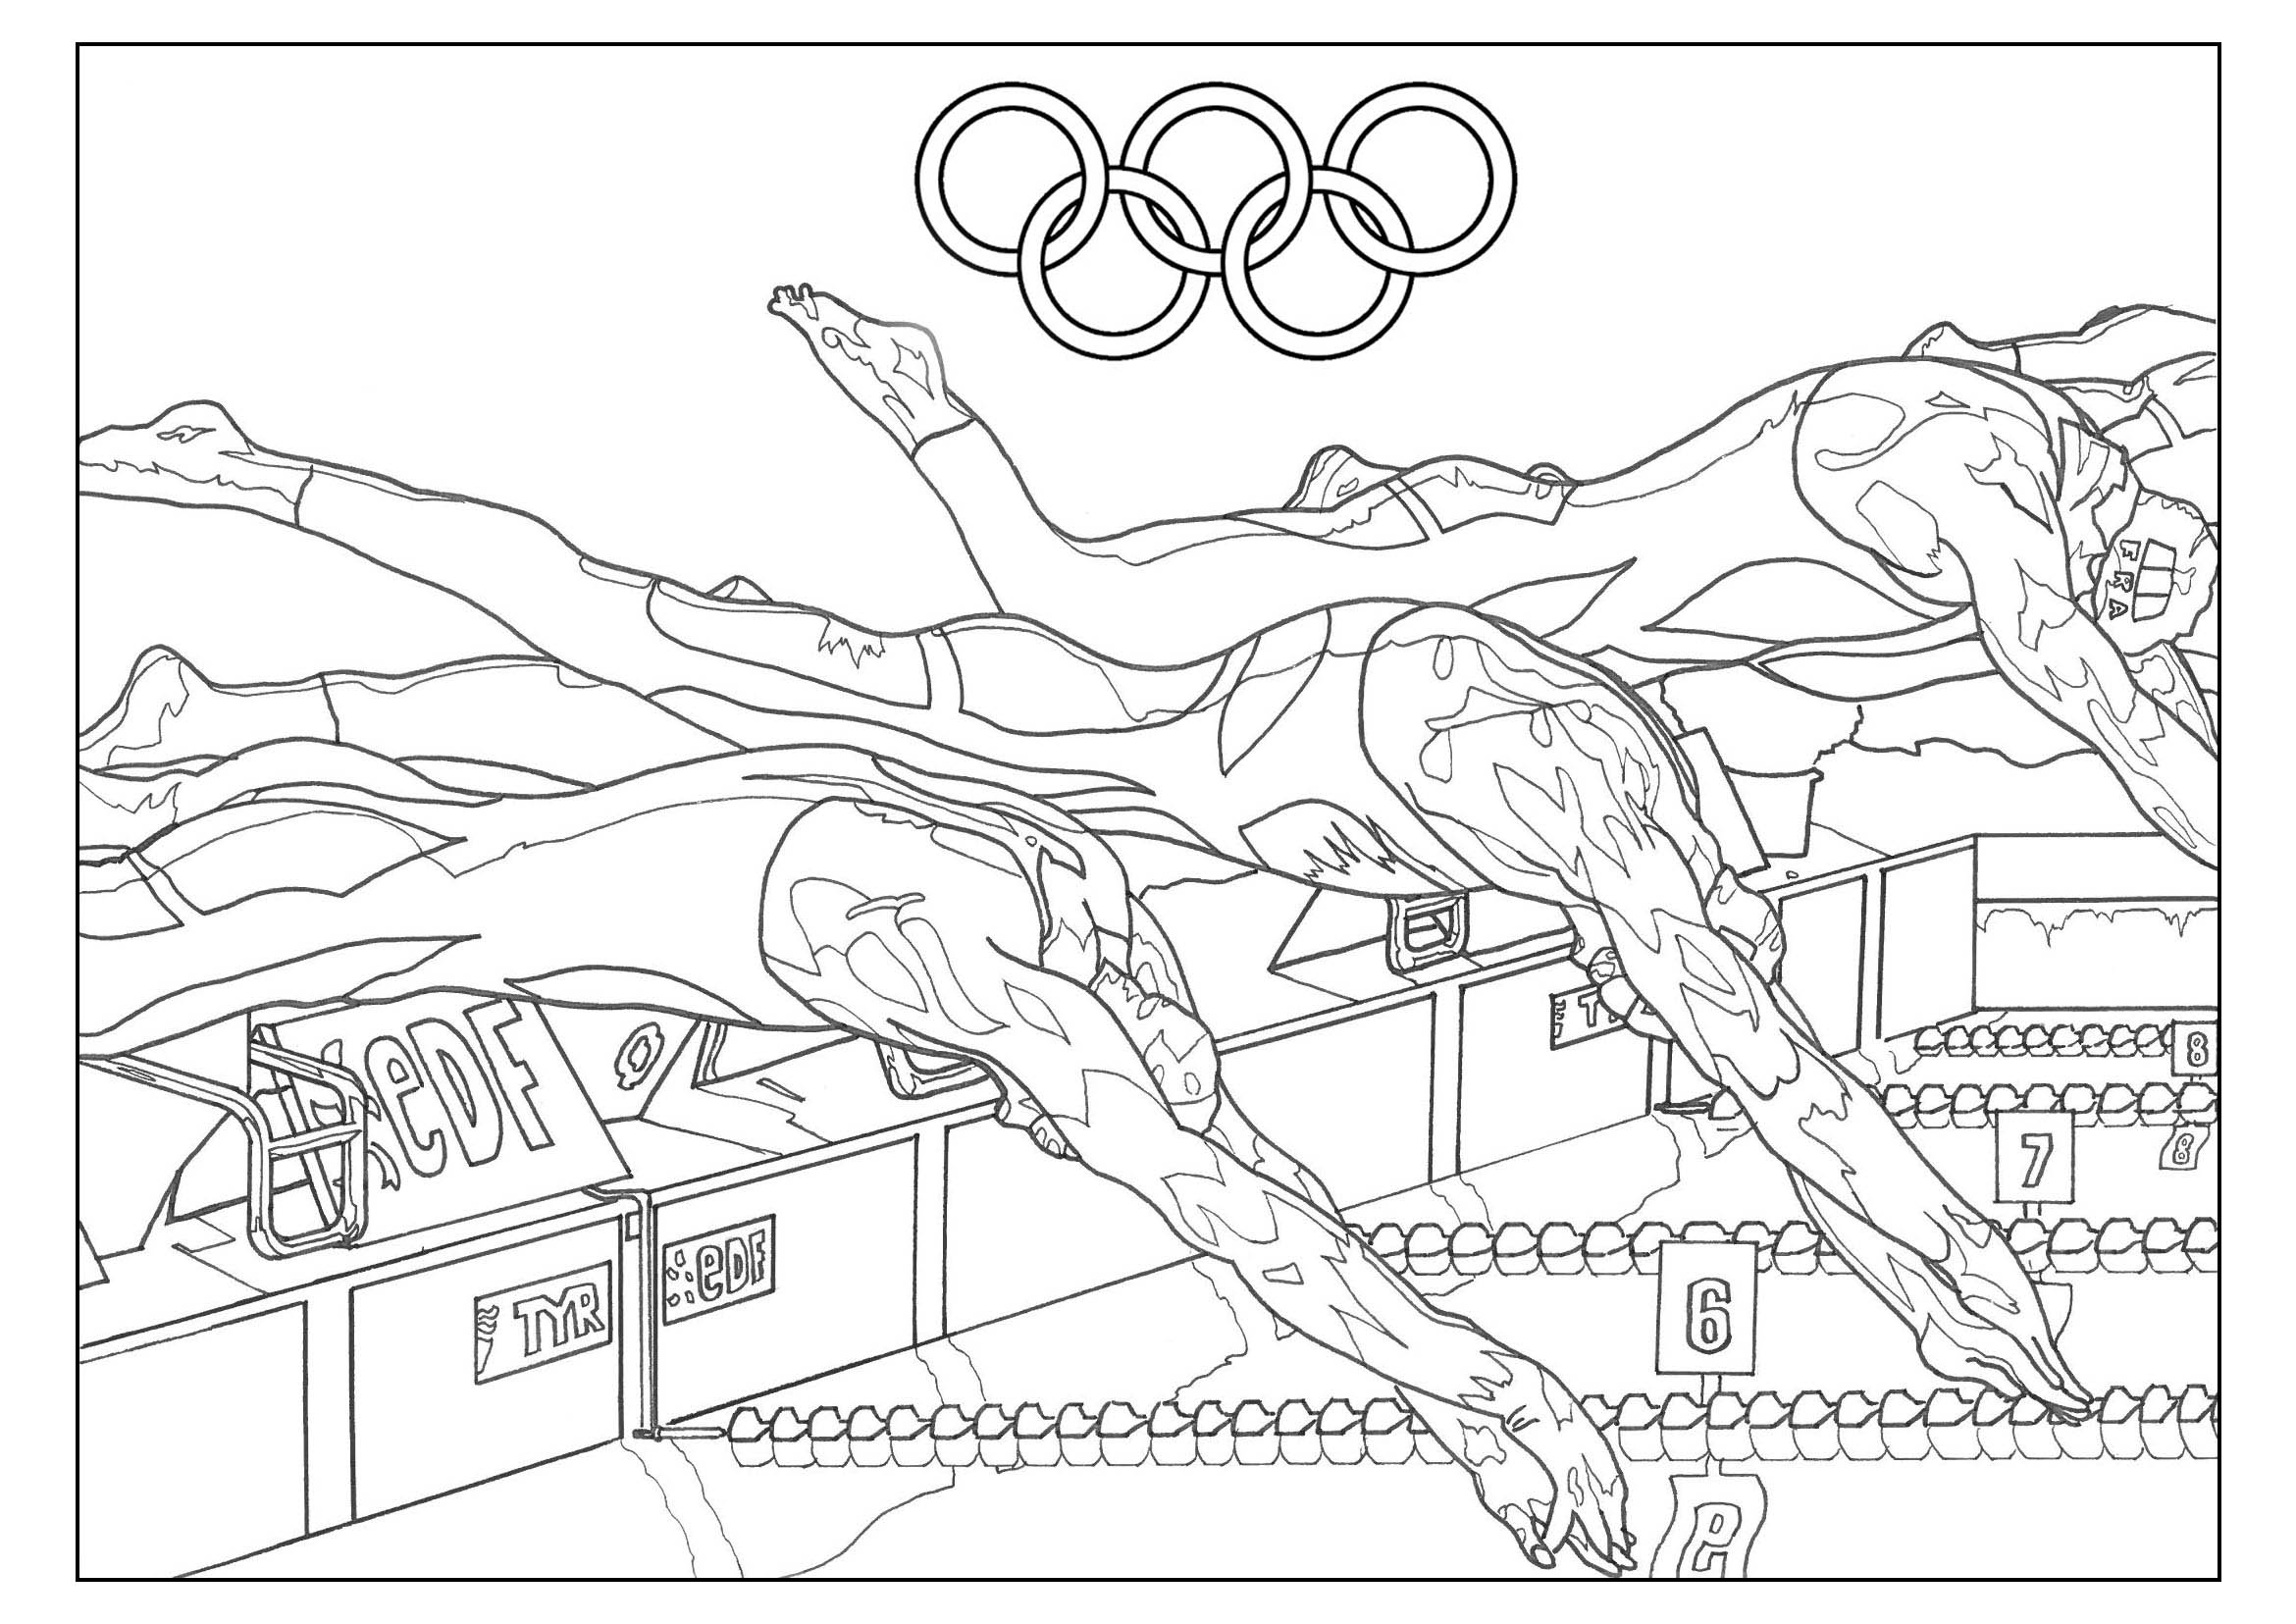 olympic colouring sheets olympic circles coloring pages download and print for free sheets olympic colouring